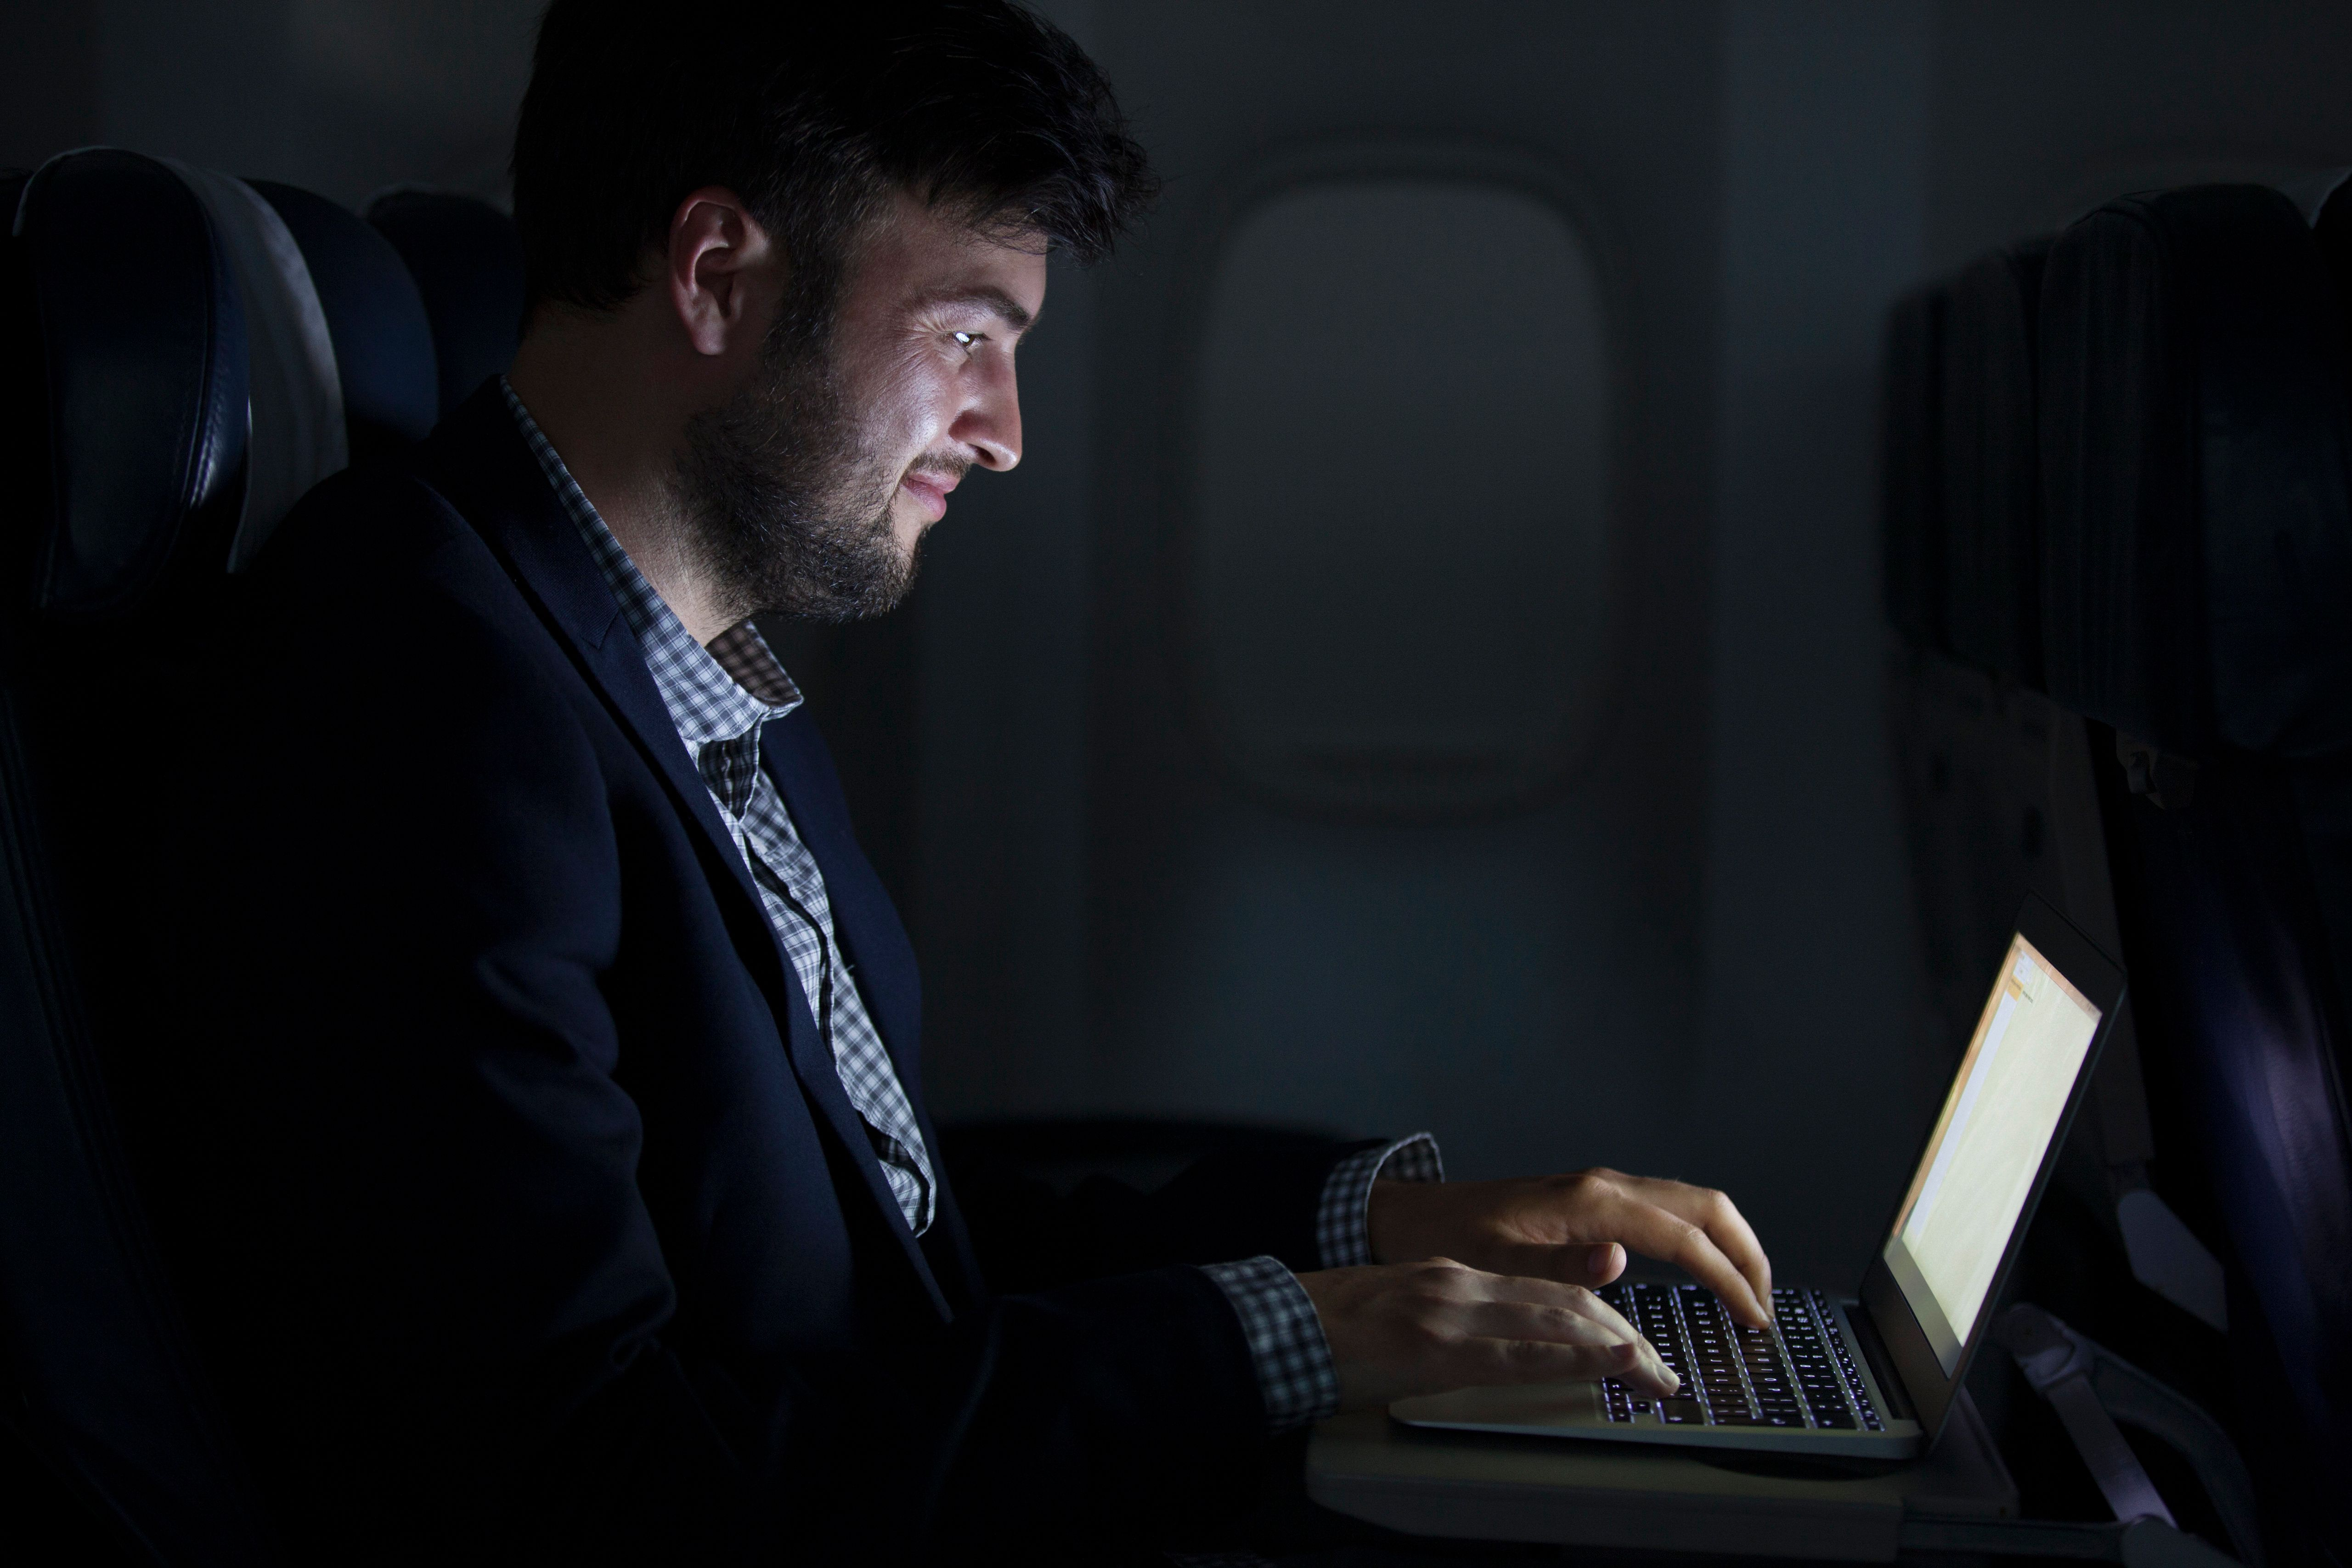 Downing Street confirms ban on laptops and other electronic devices on certain flights entering the